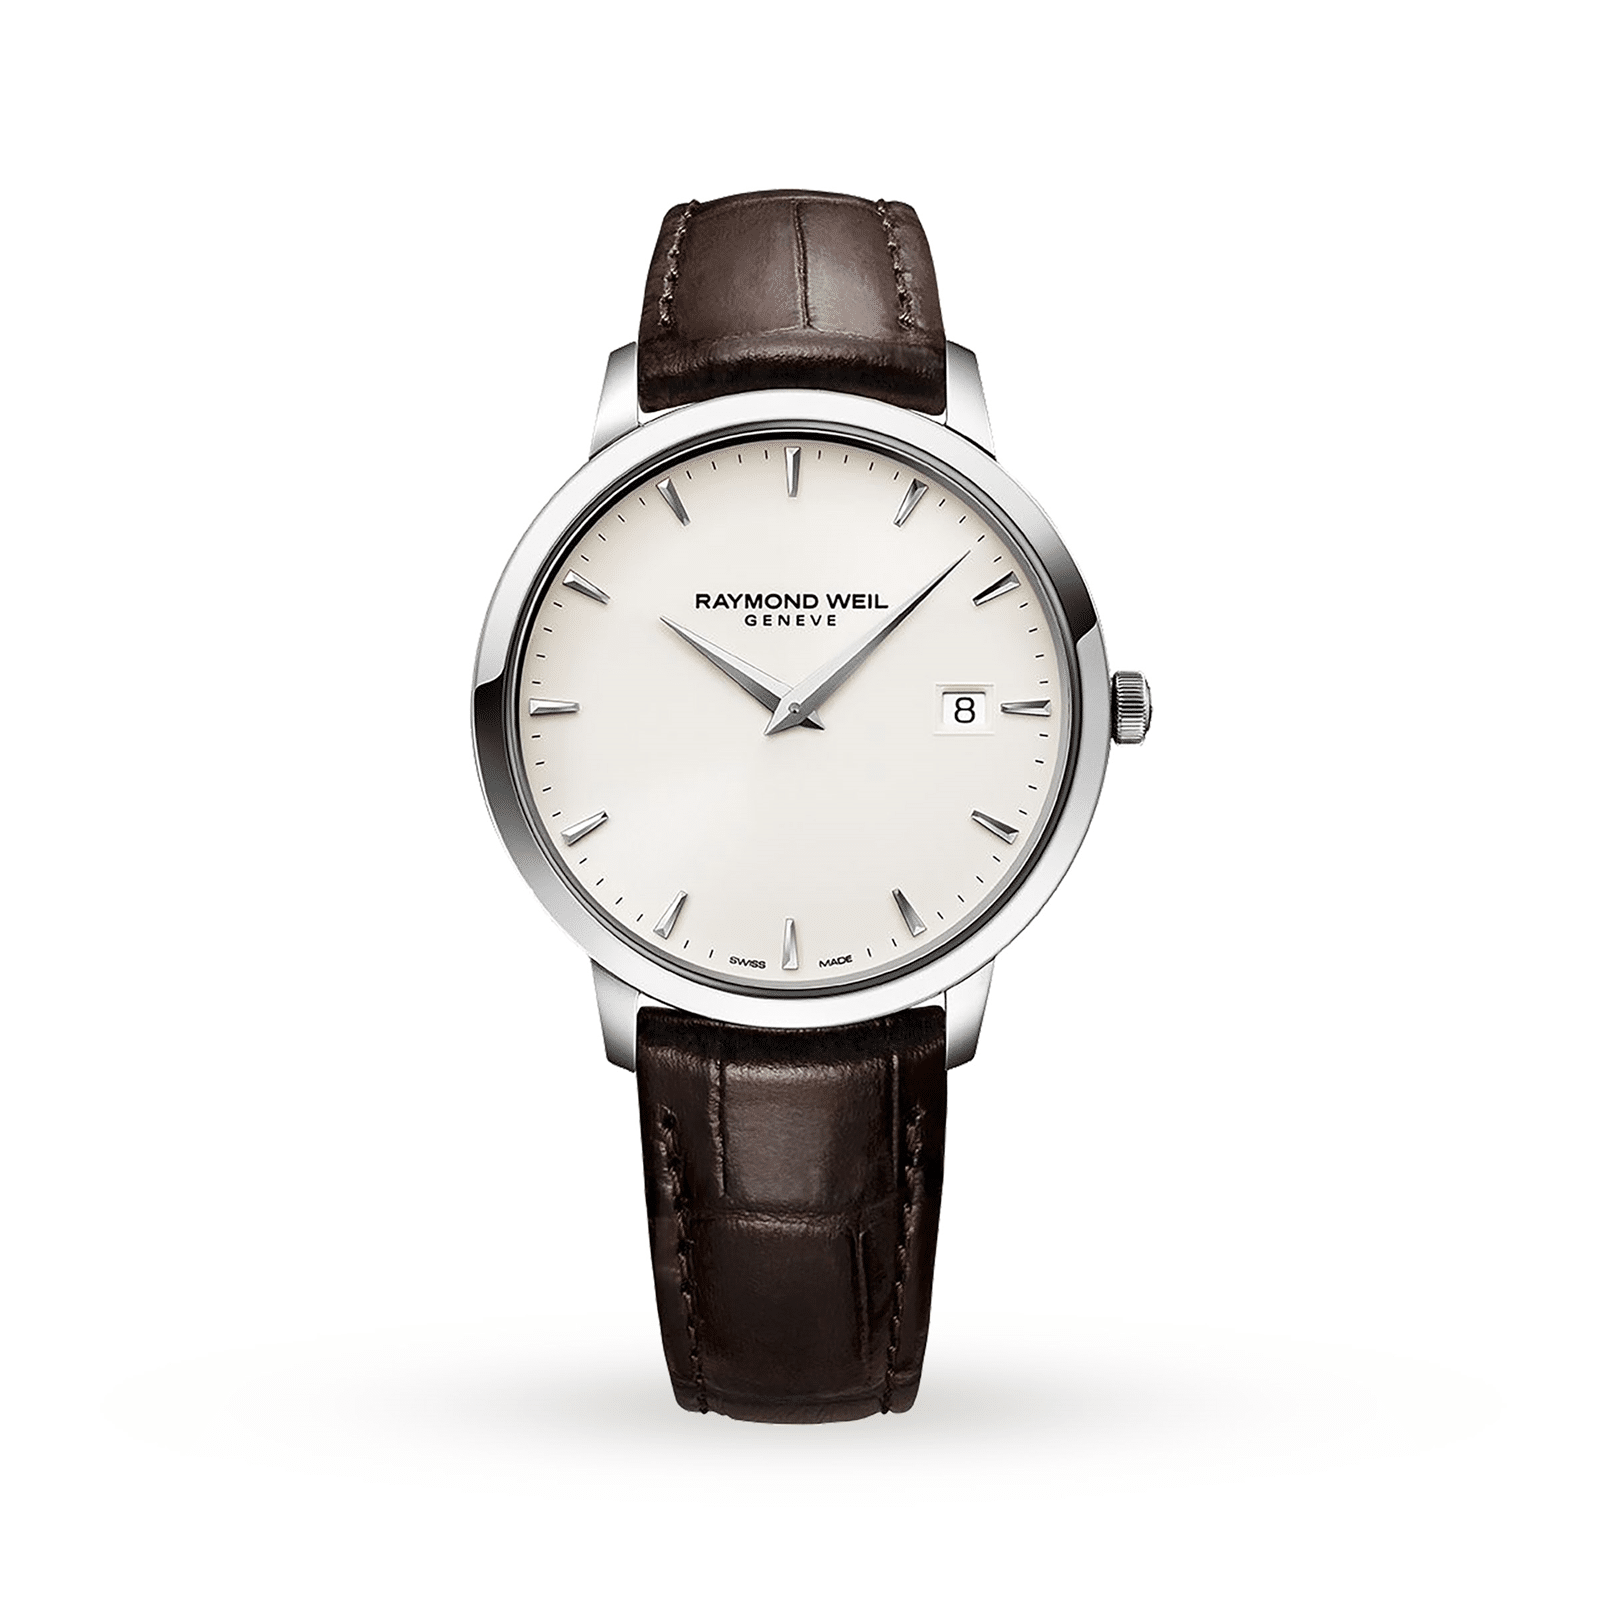 Raymond Weil watch with brown leather strap